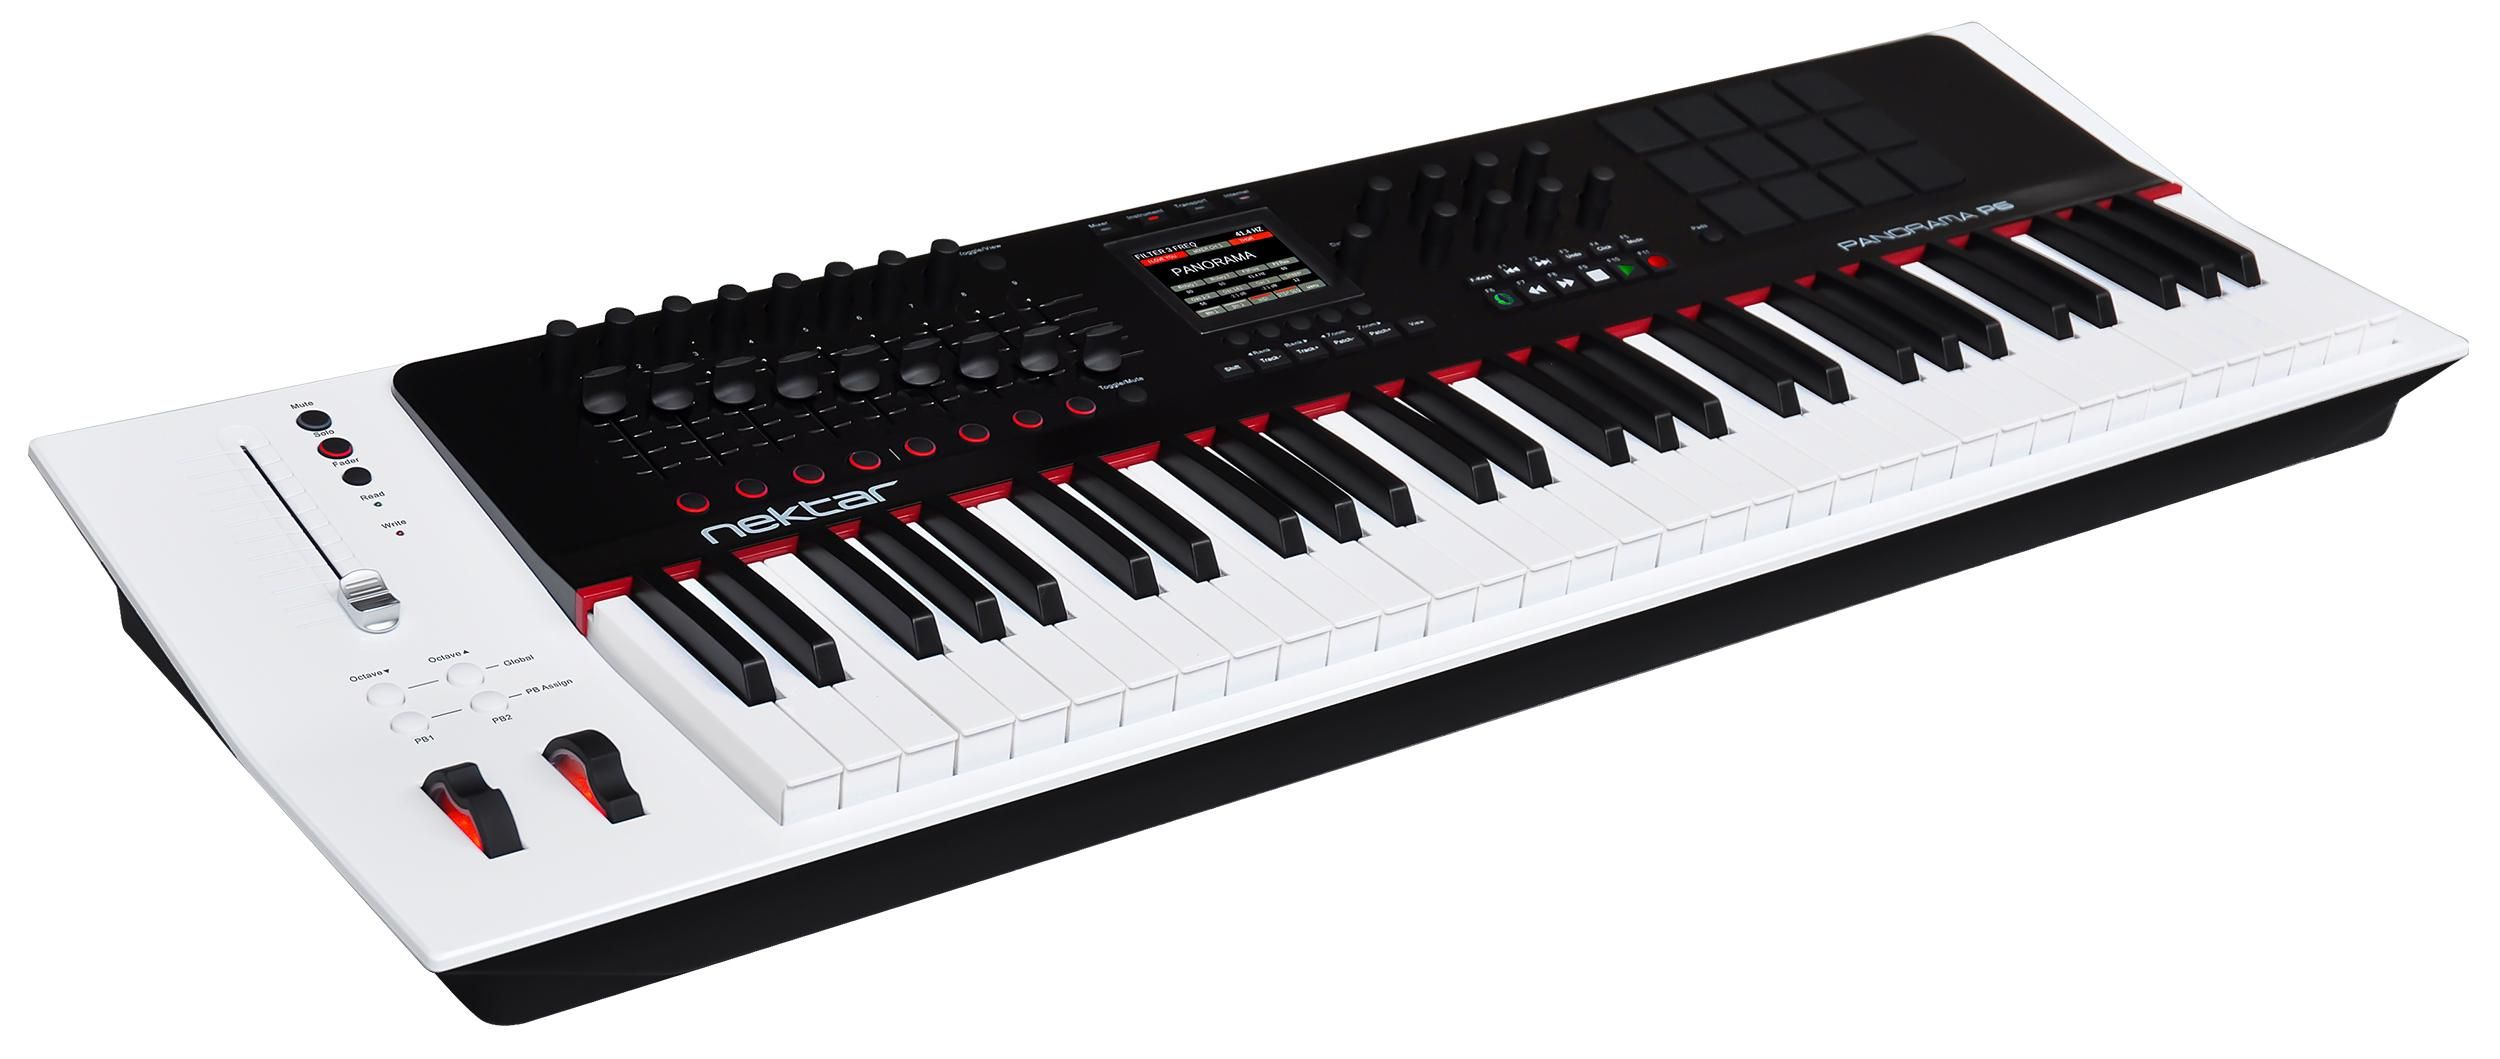 Nektar Panorama P6 Advanced 61-Key USB MIDI Controller